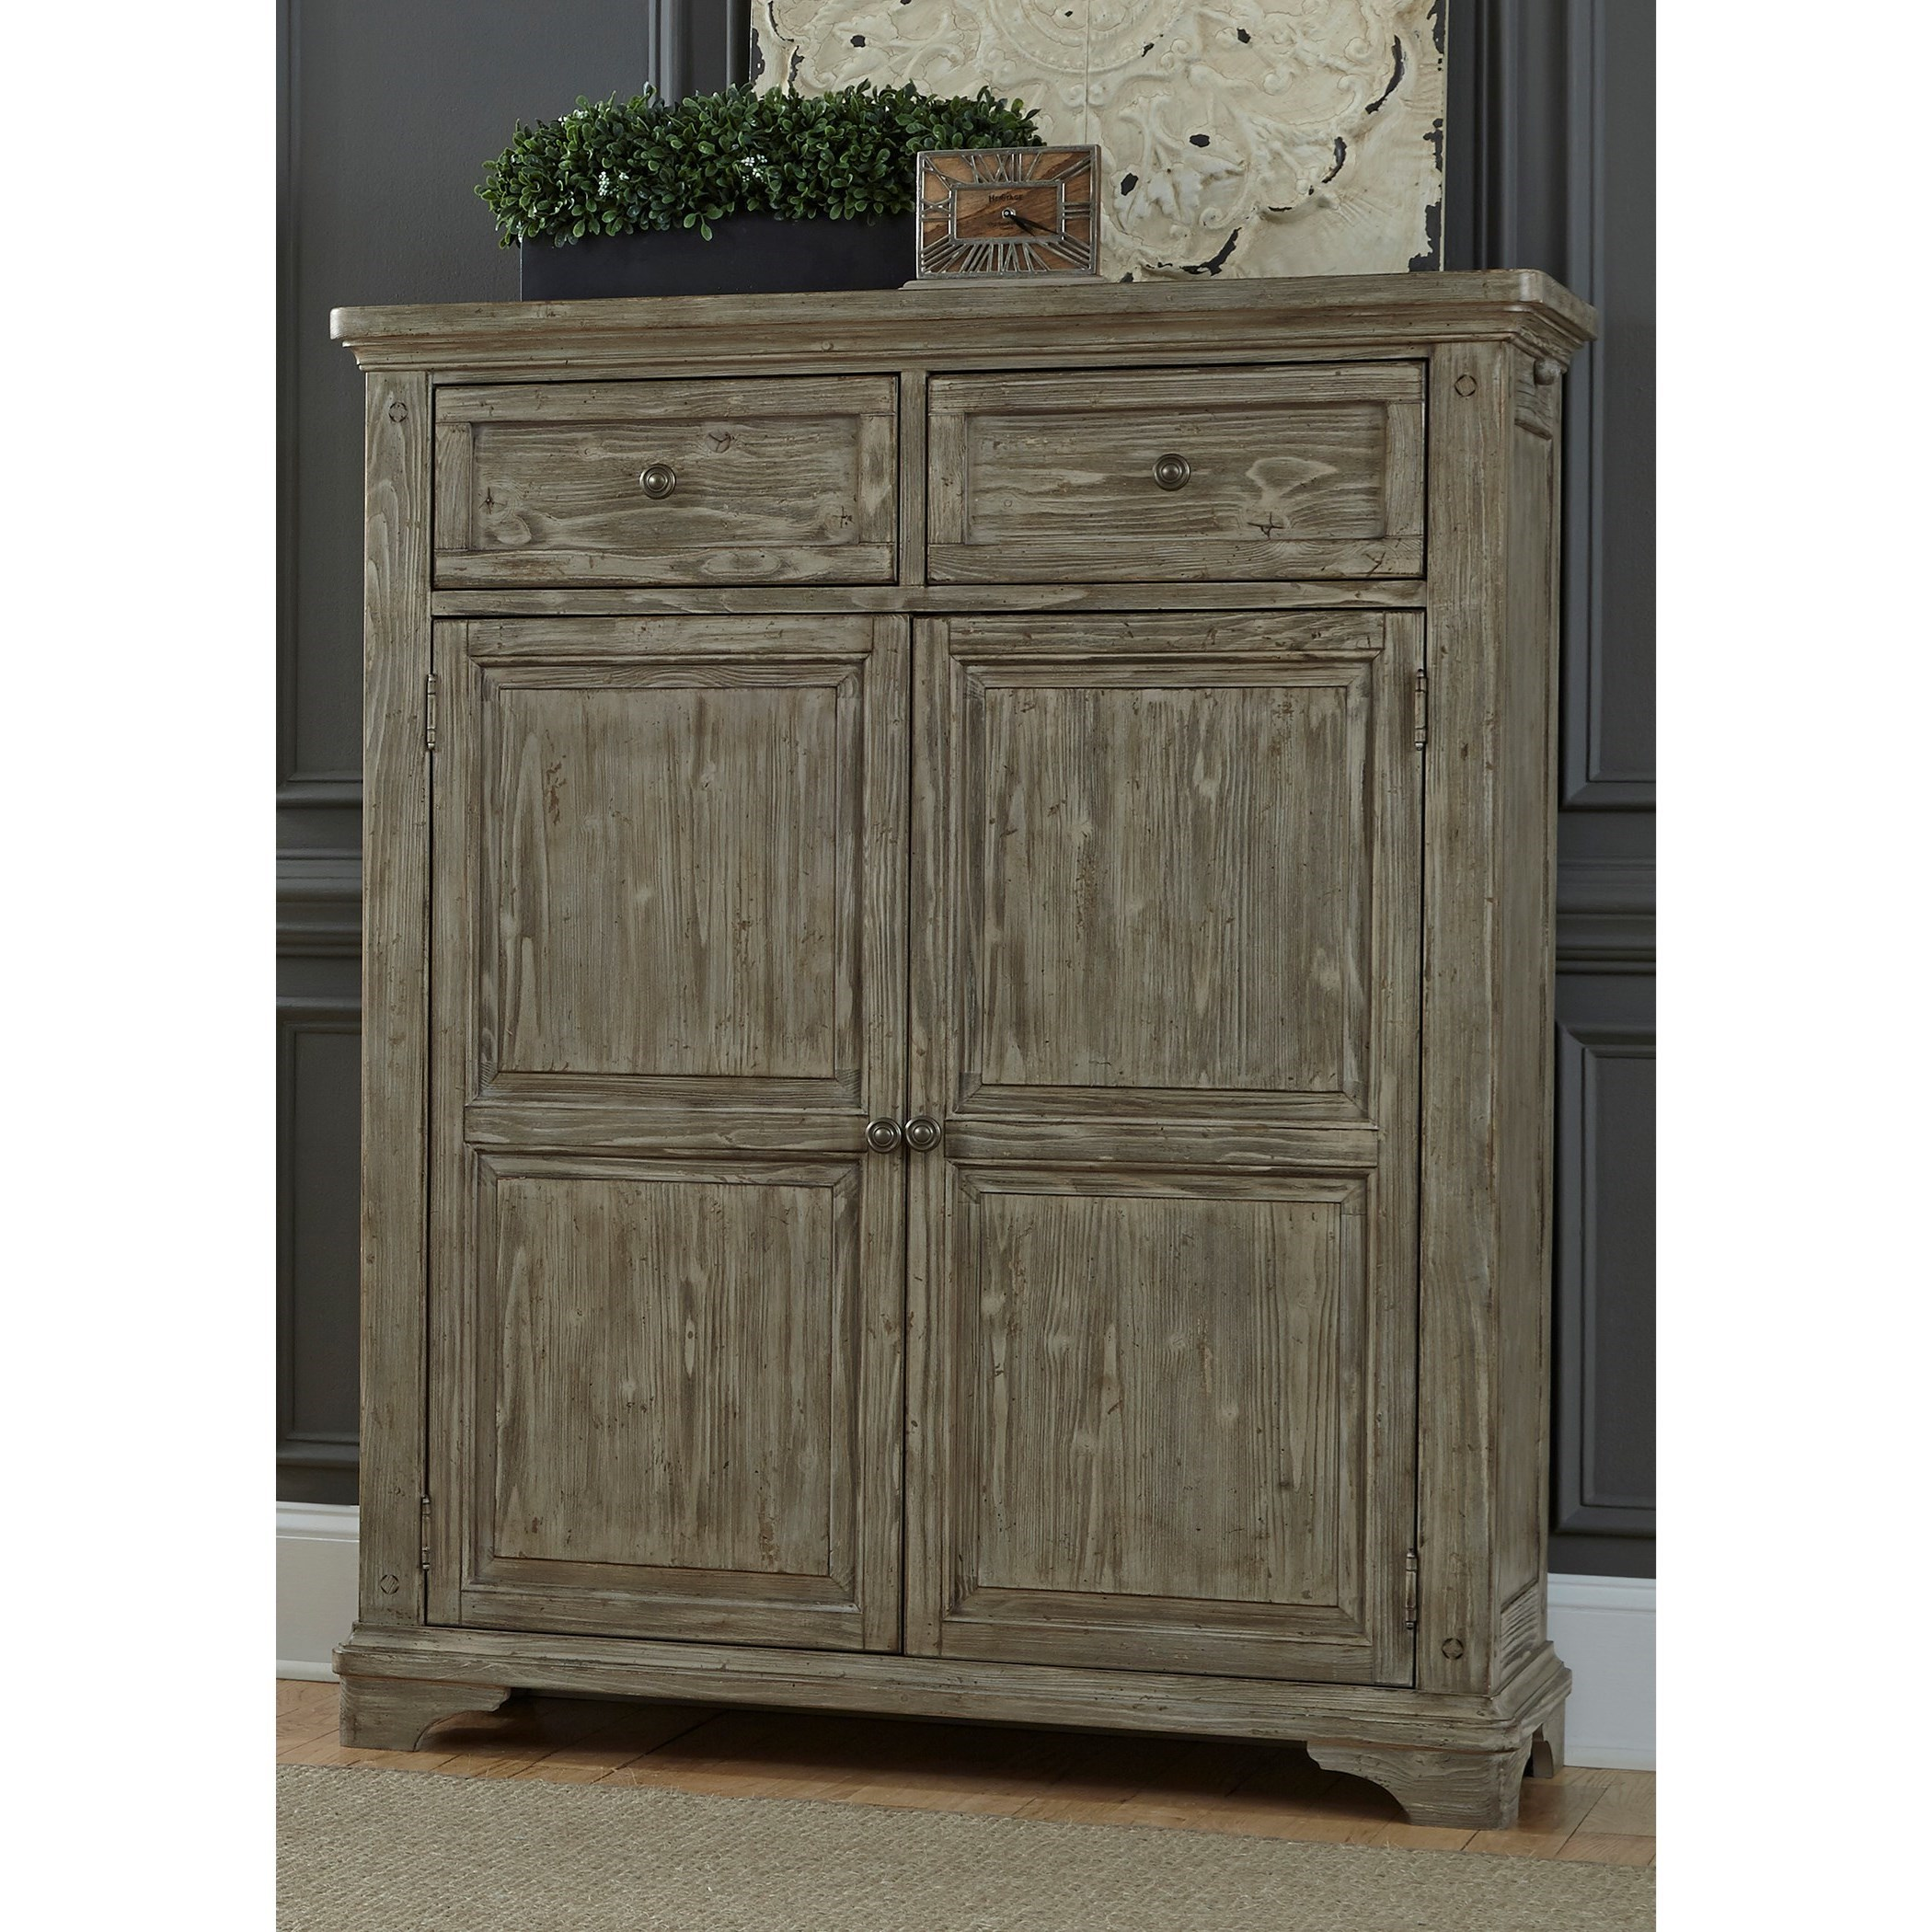 Superbe Liberty Furniture Highlands Door Chest With 2 Drawers